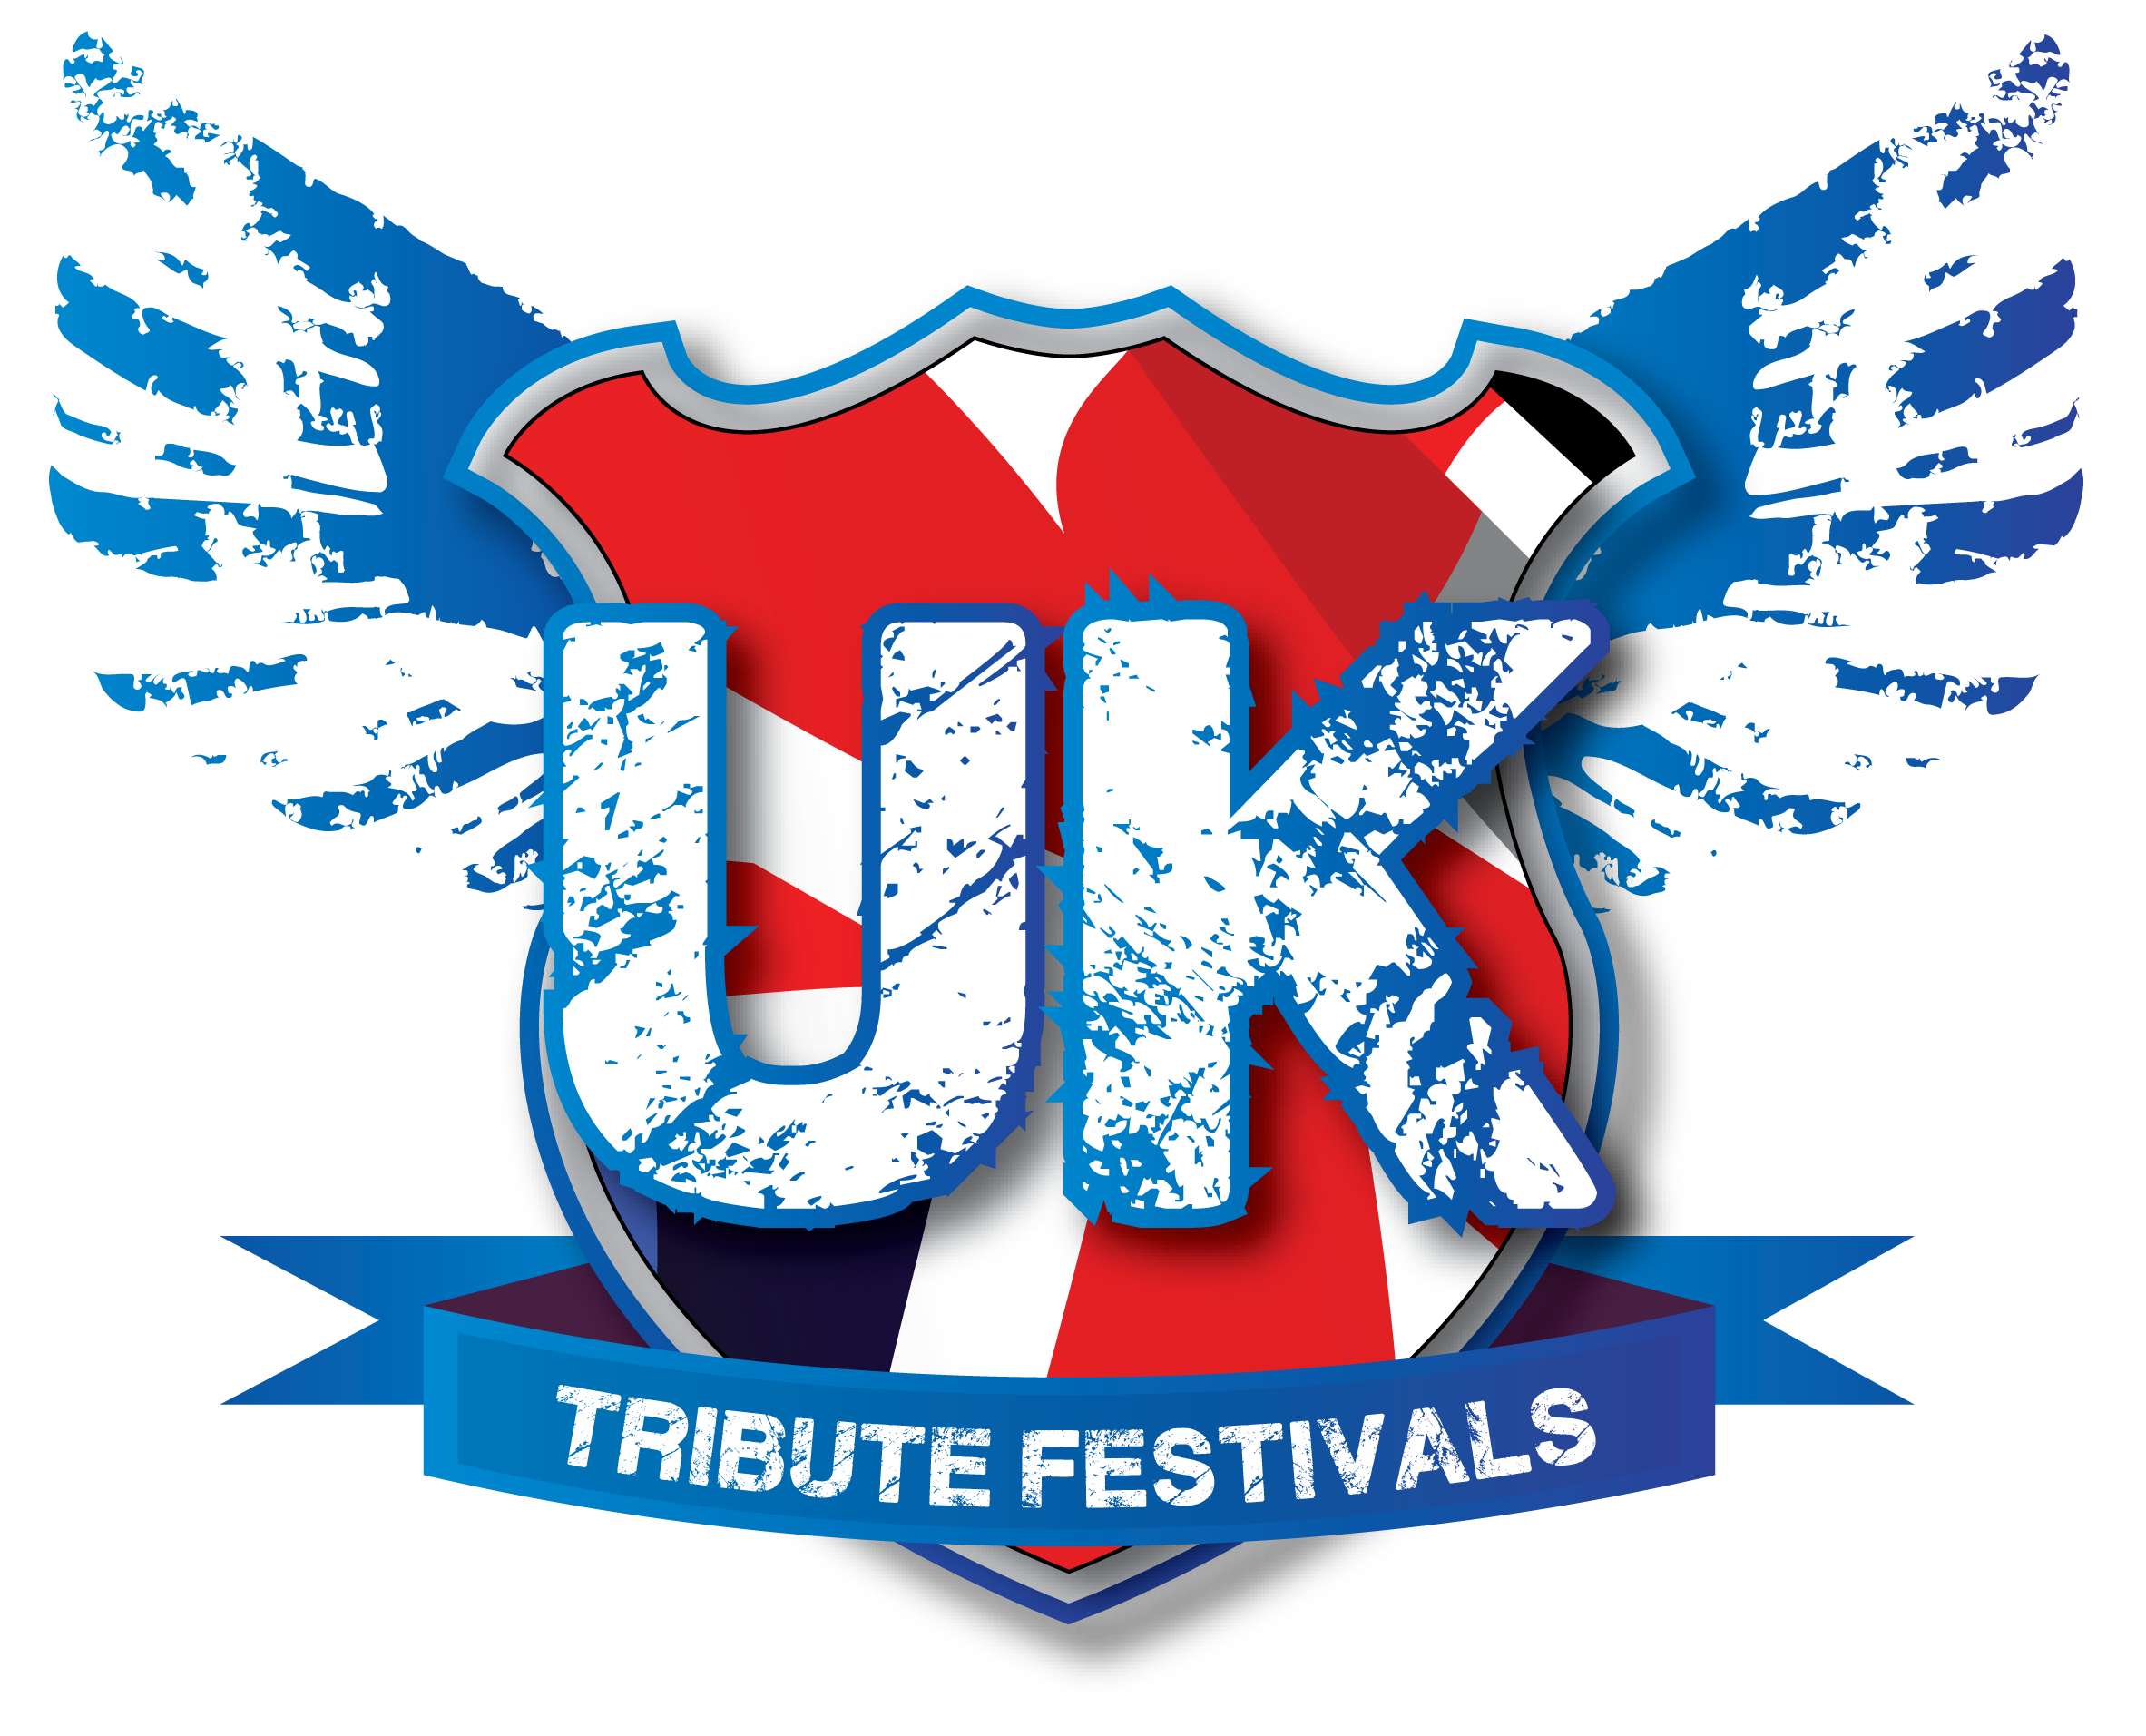 The UK's biggest tribute festivals